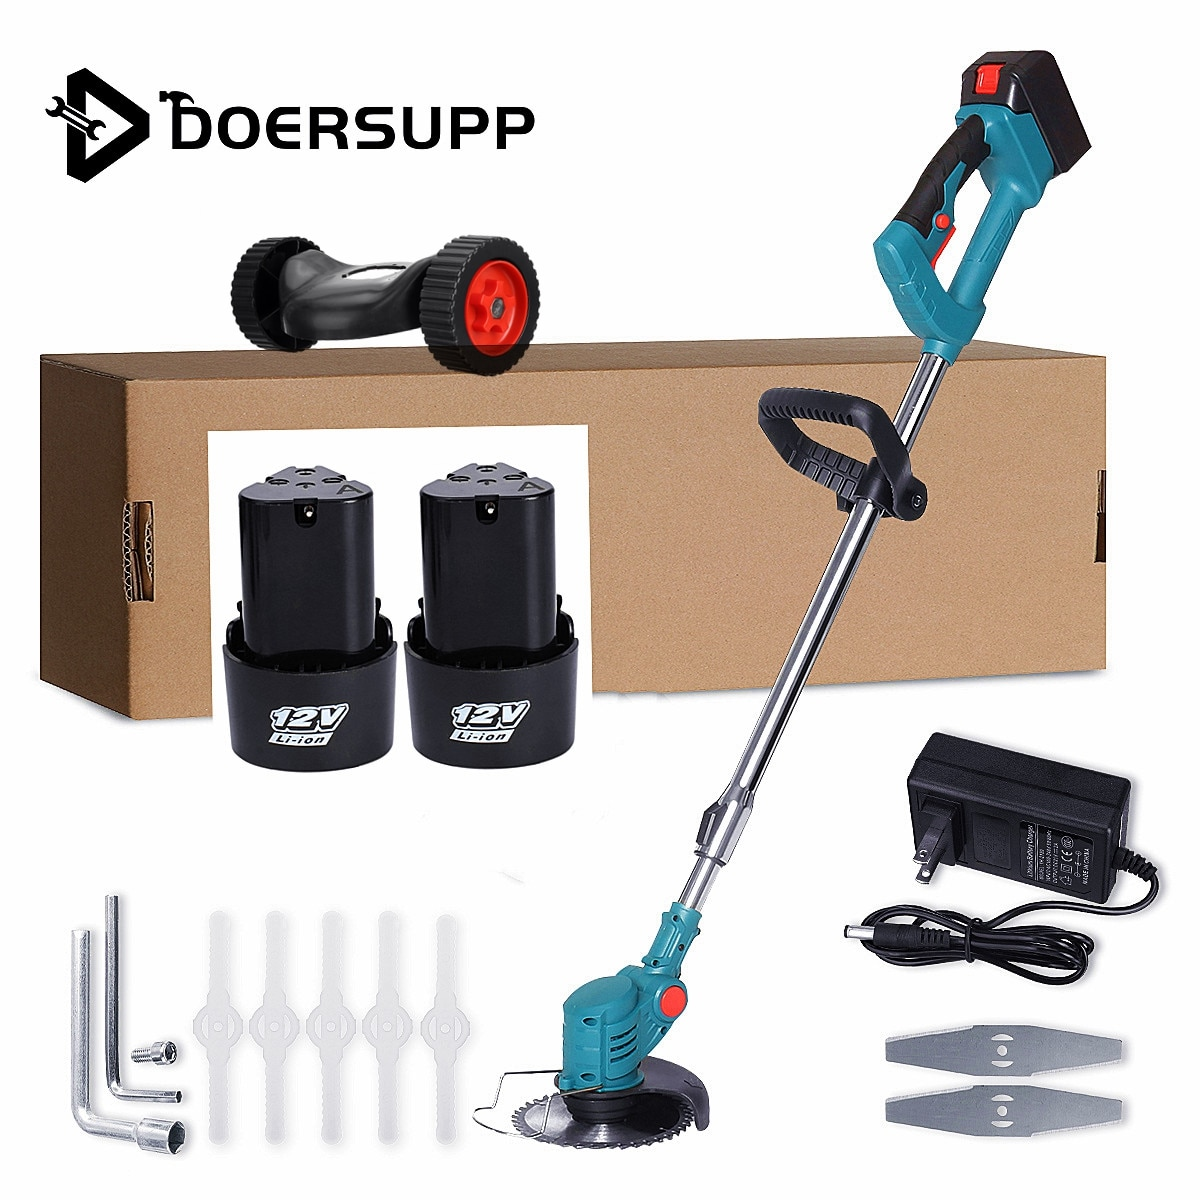 With 2/1 Battery&Wheels Electric Grass Trimmer 1500W Garden Lawn Mower Rechargeable Cordless Grass Pruning Tool Machine